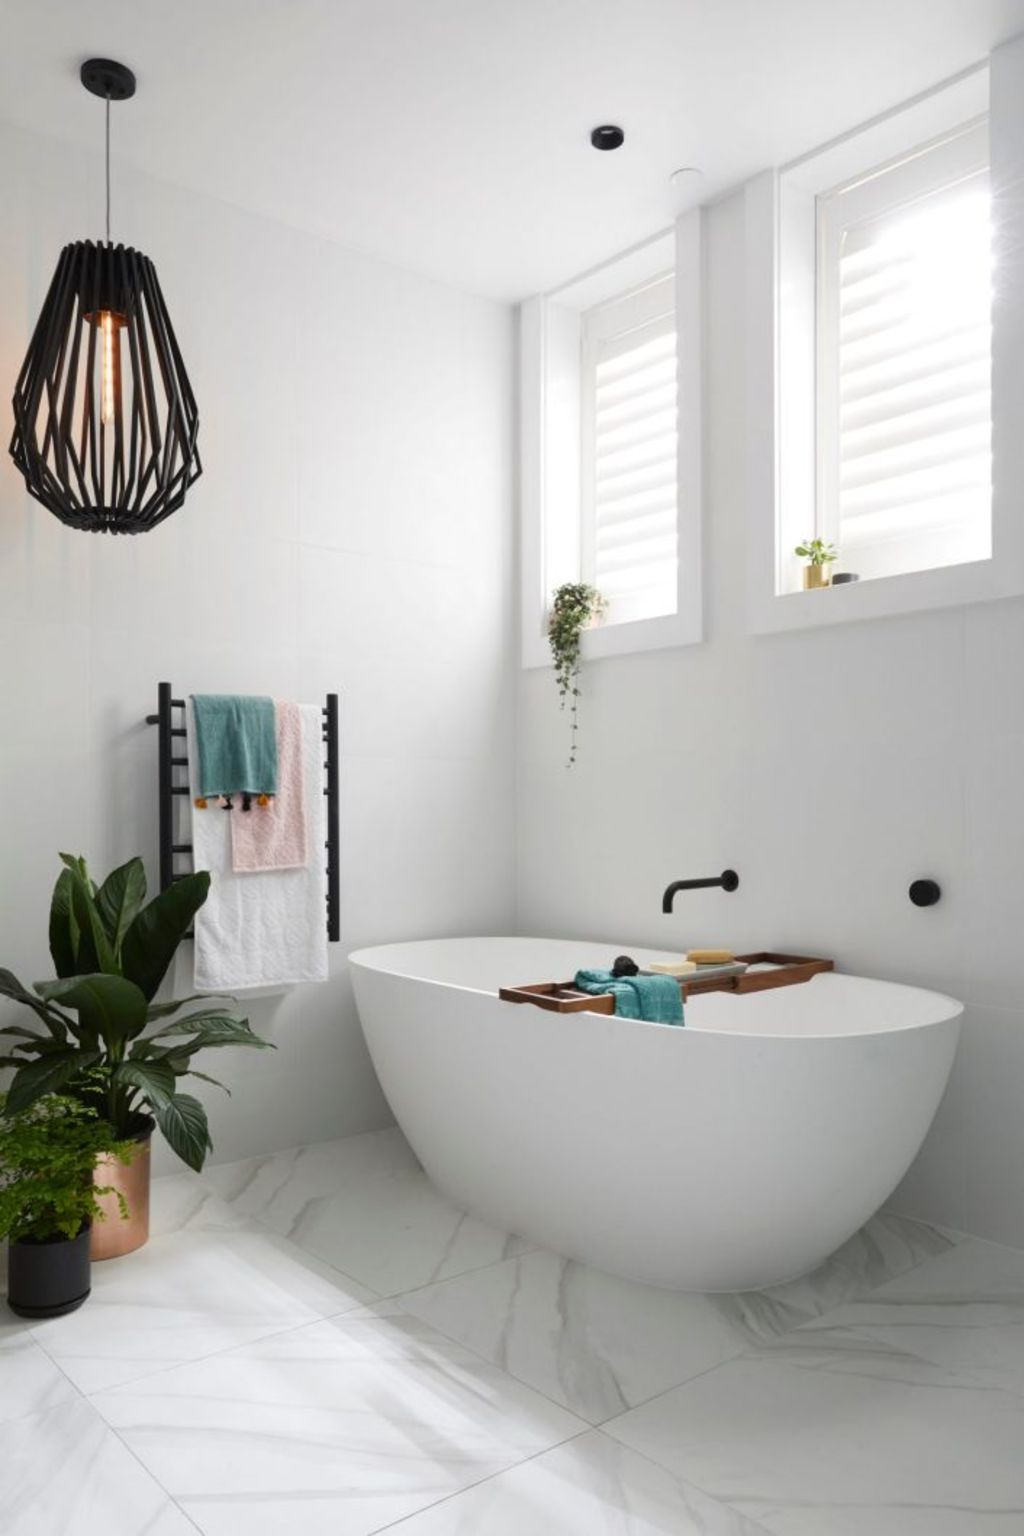 Kerrie and Spence's main bathroom. Photo: Channel Nine